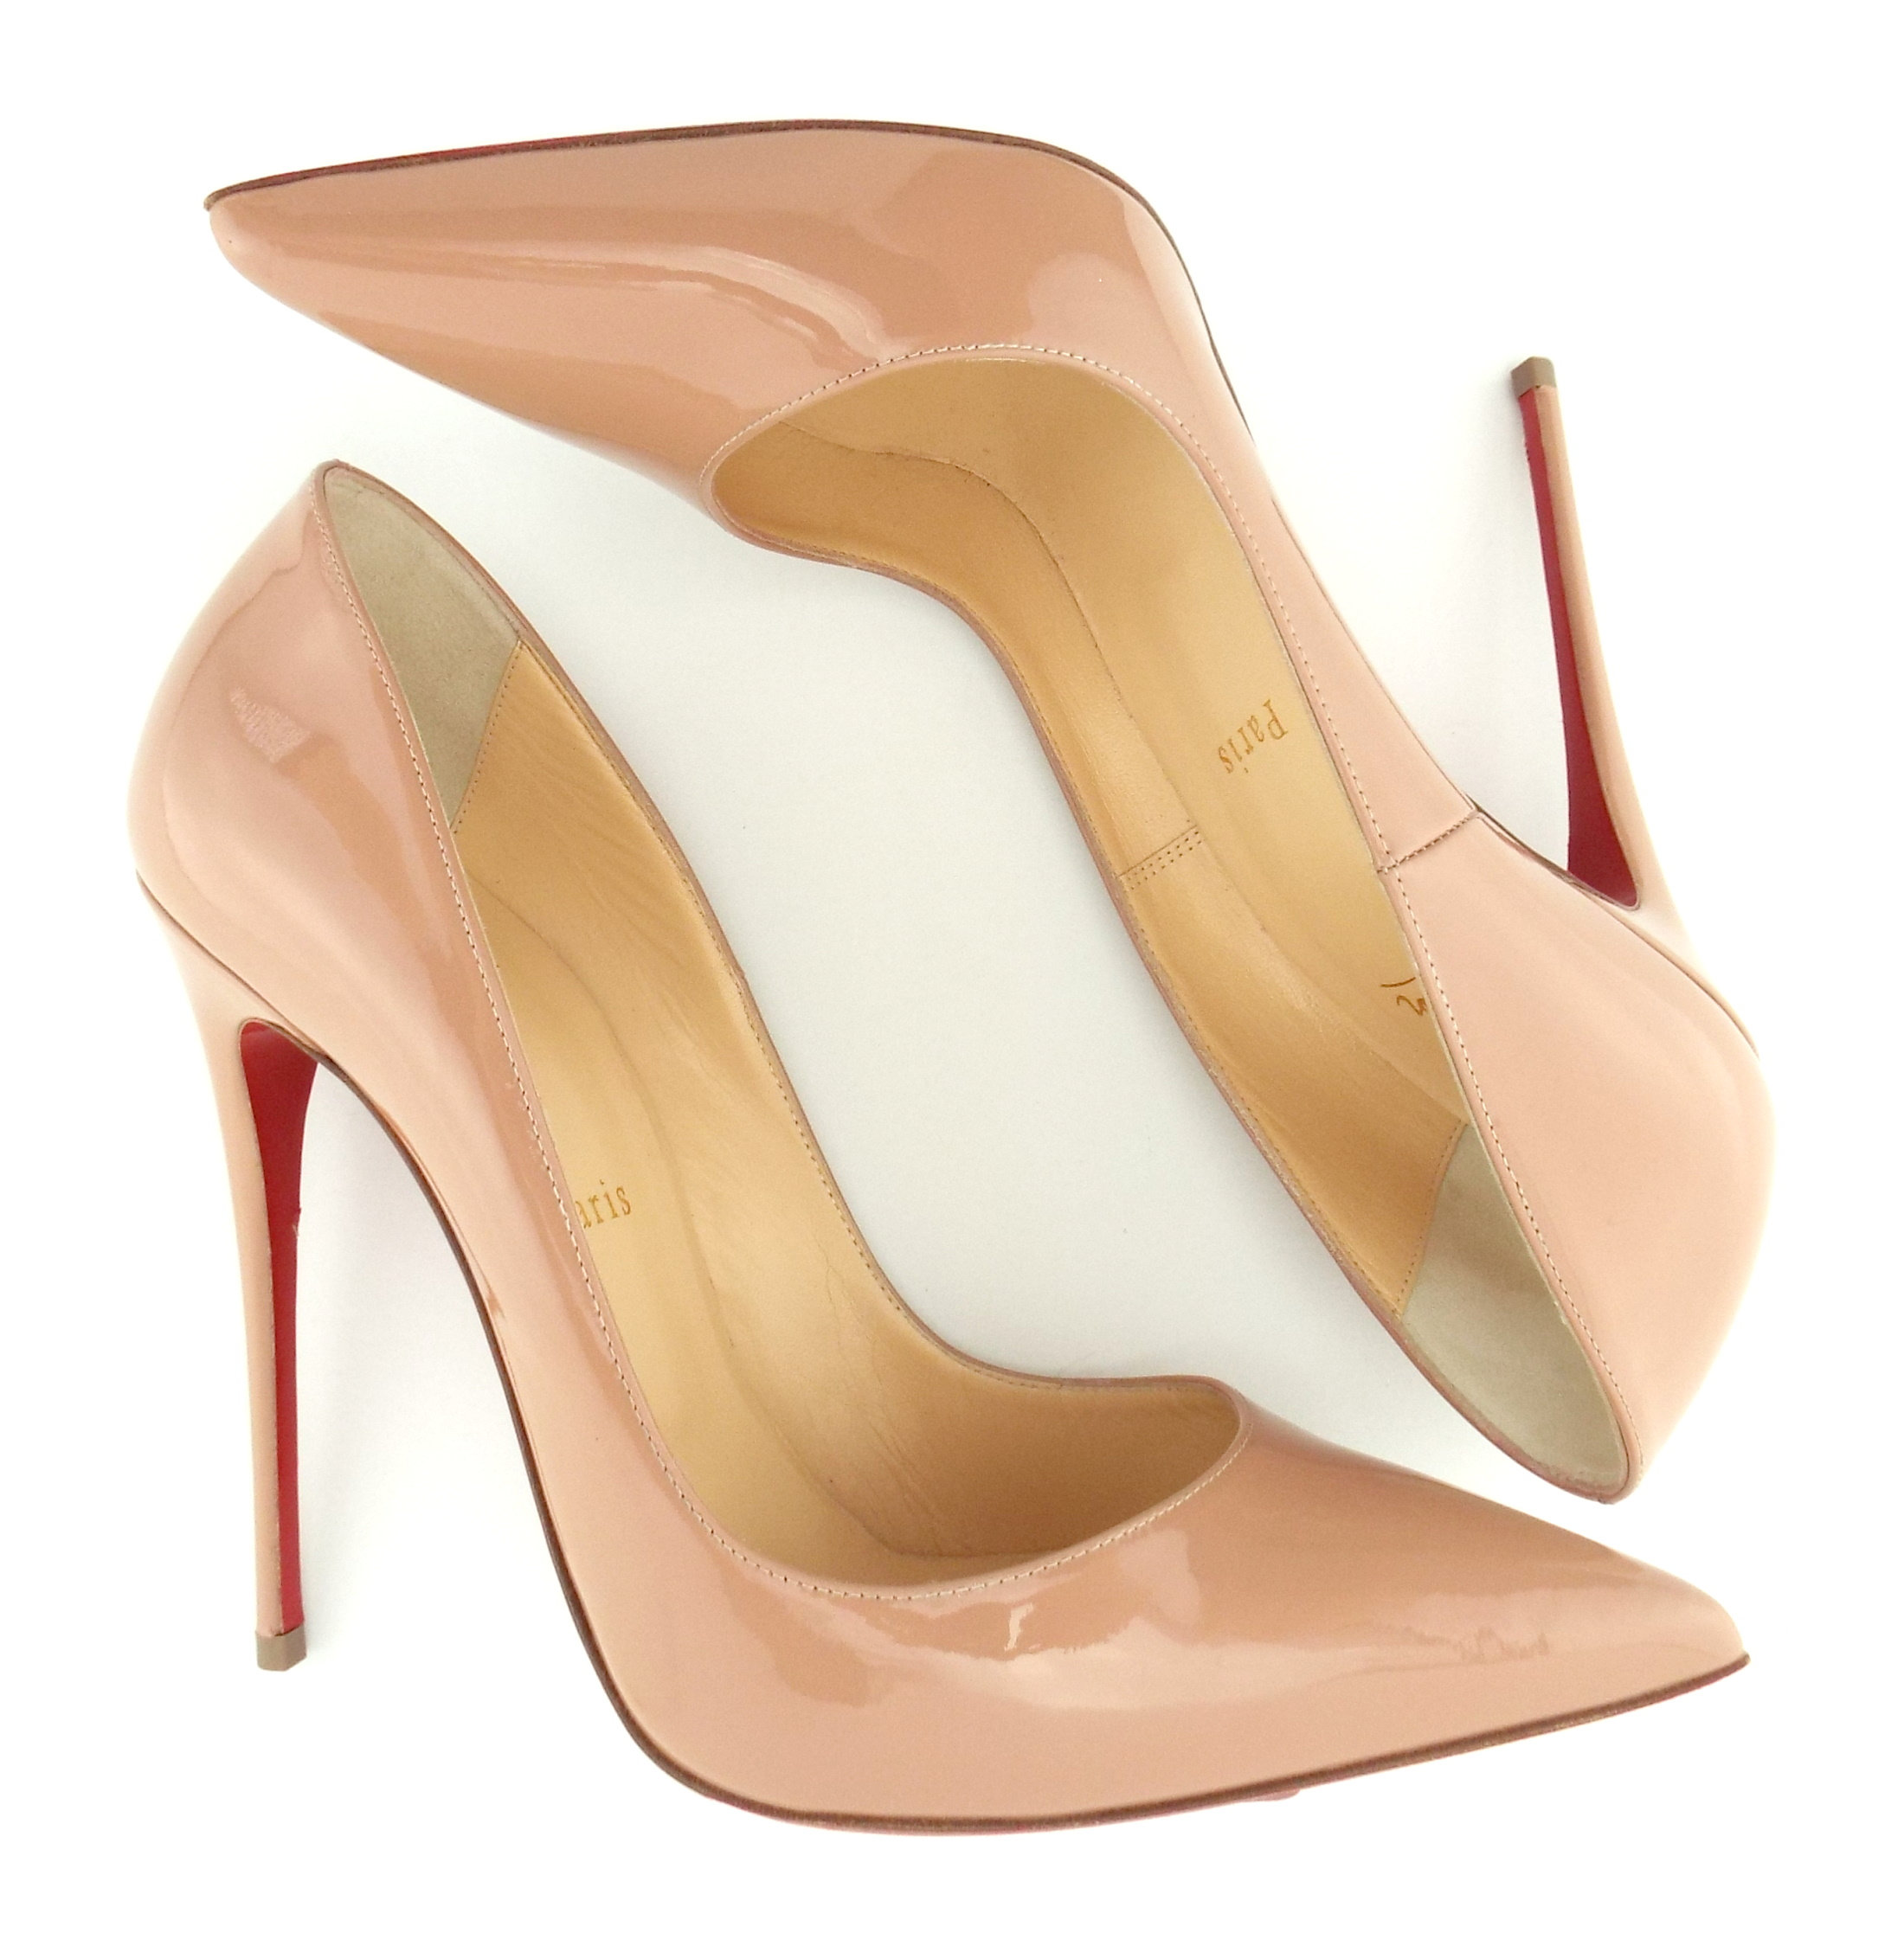 Christian Louboutin Nude Patent Pumps 39 5 Us9